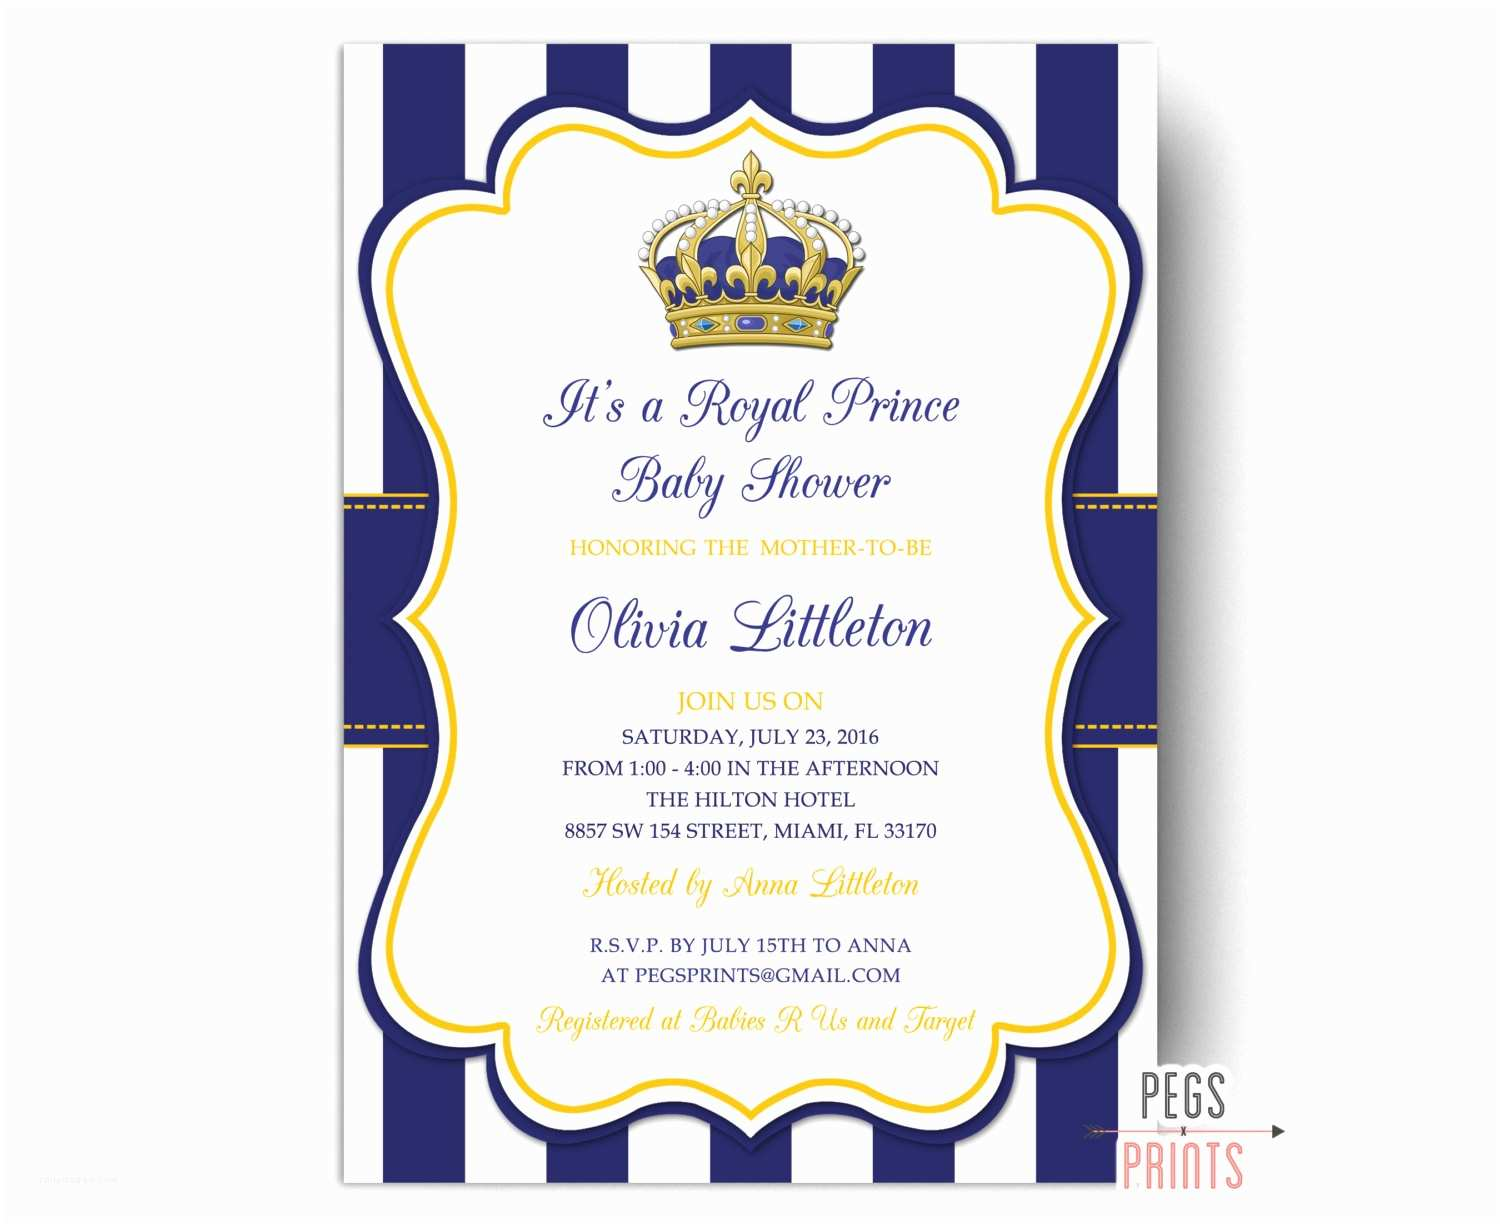 Little Prince Baby Shower Invitations Royal Prince Baby Shower Invitations Little Prince Baby